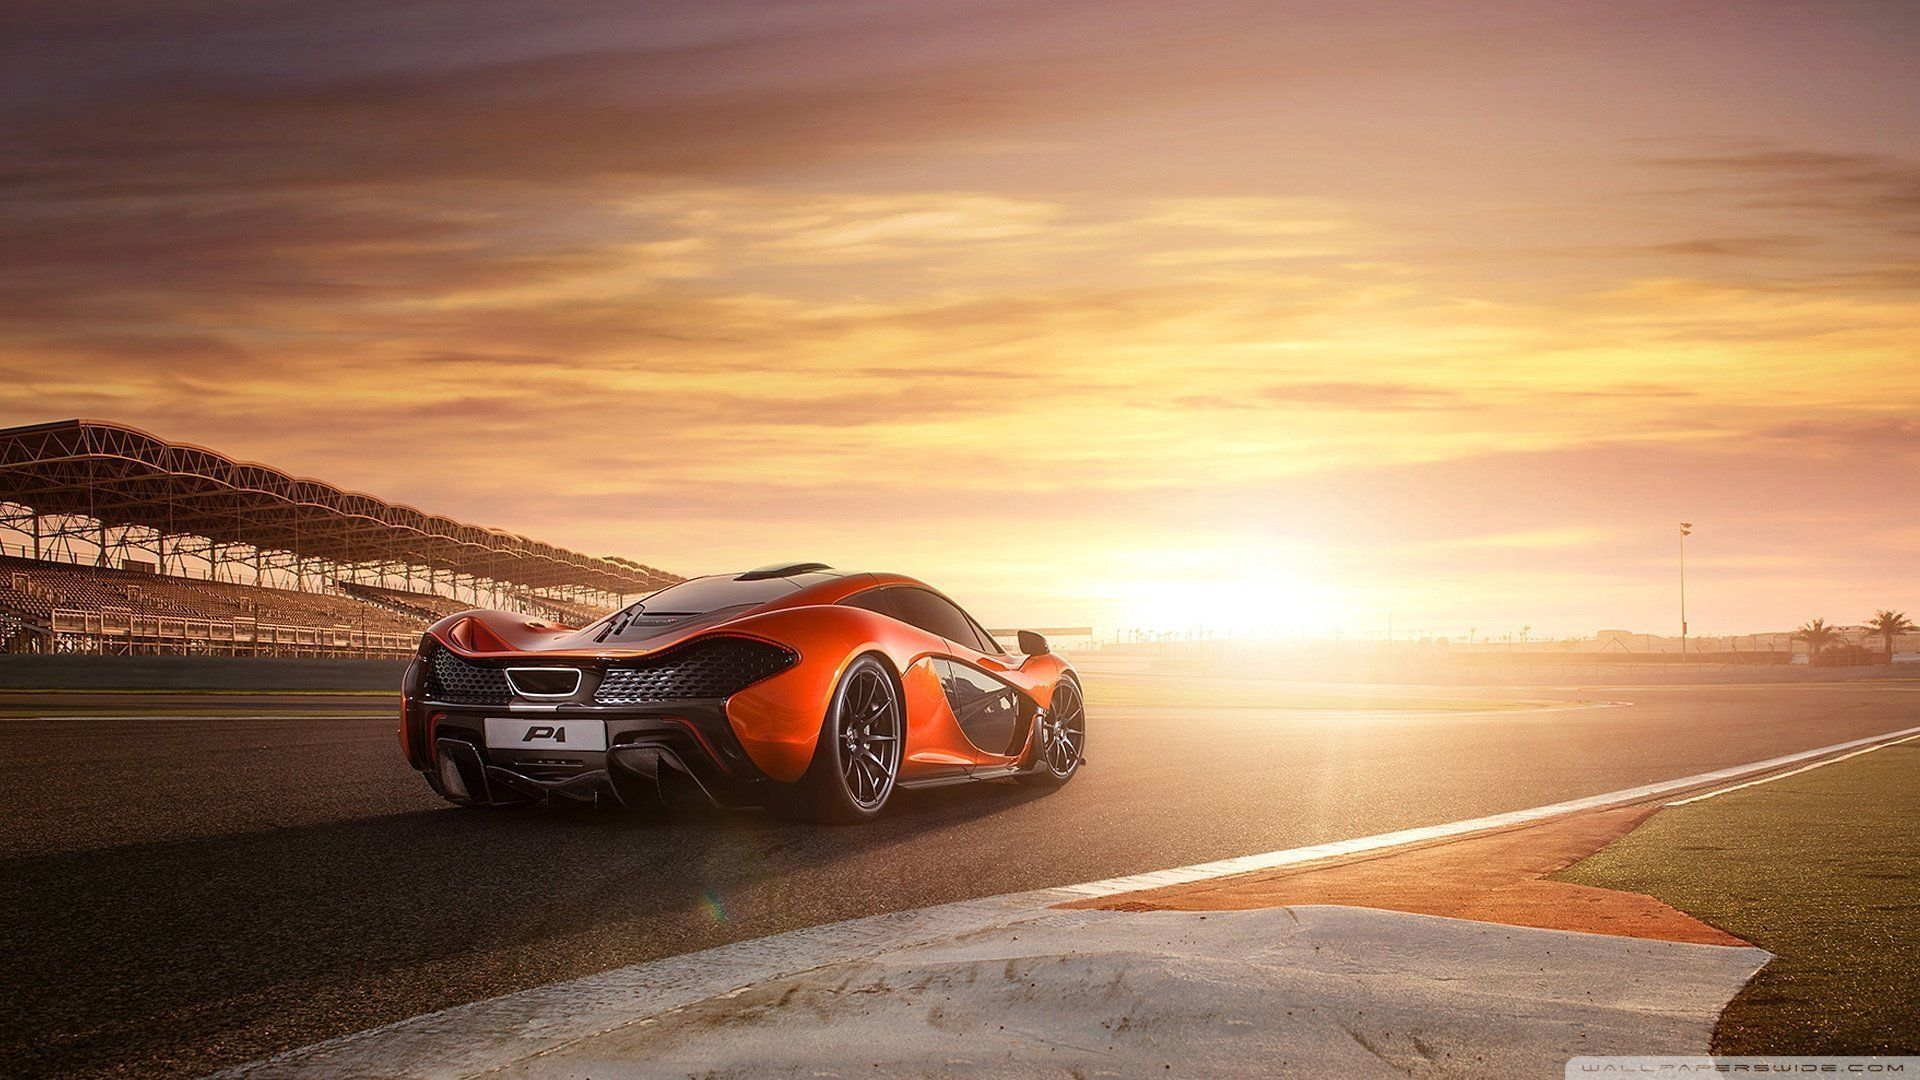 Car 2019 Mclaren P1 Race Track Wallpaper In 2020 Lamborghini Aventador Wallpaper Car Car Wallpapers